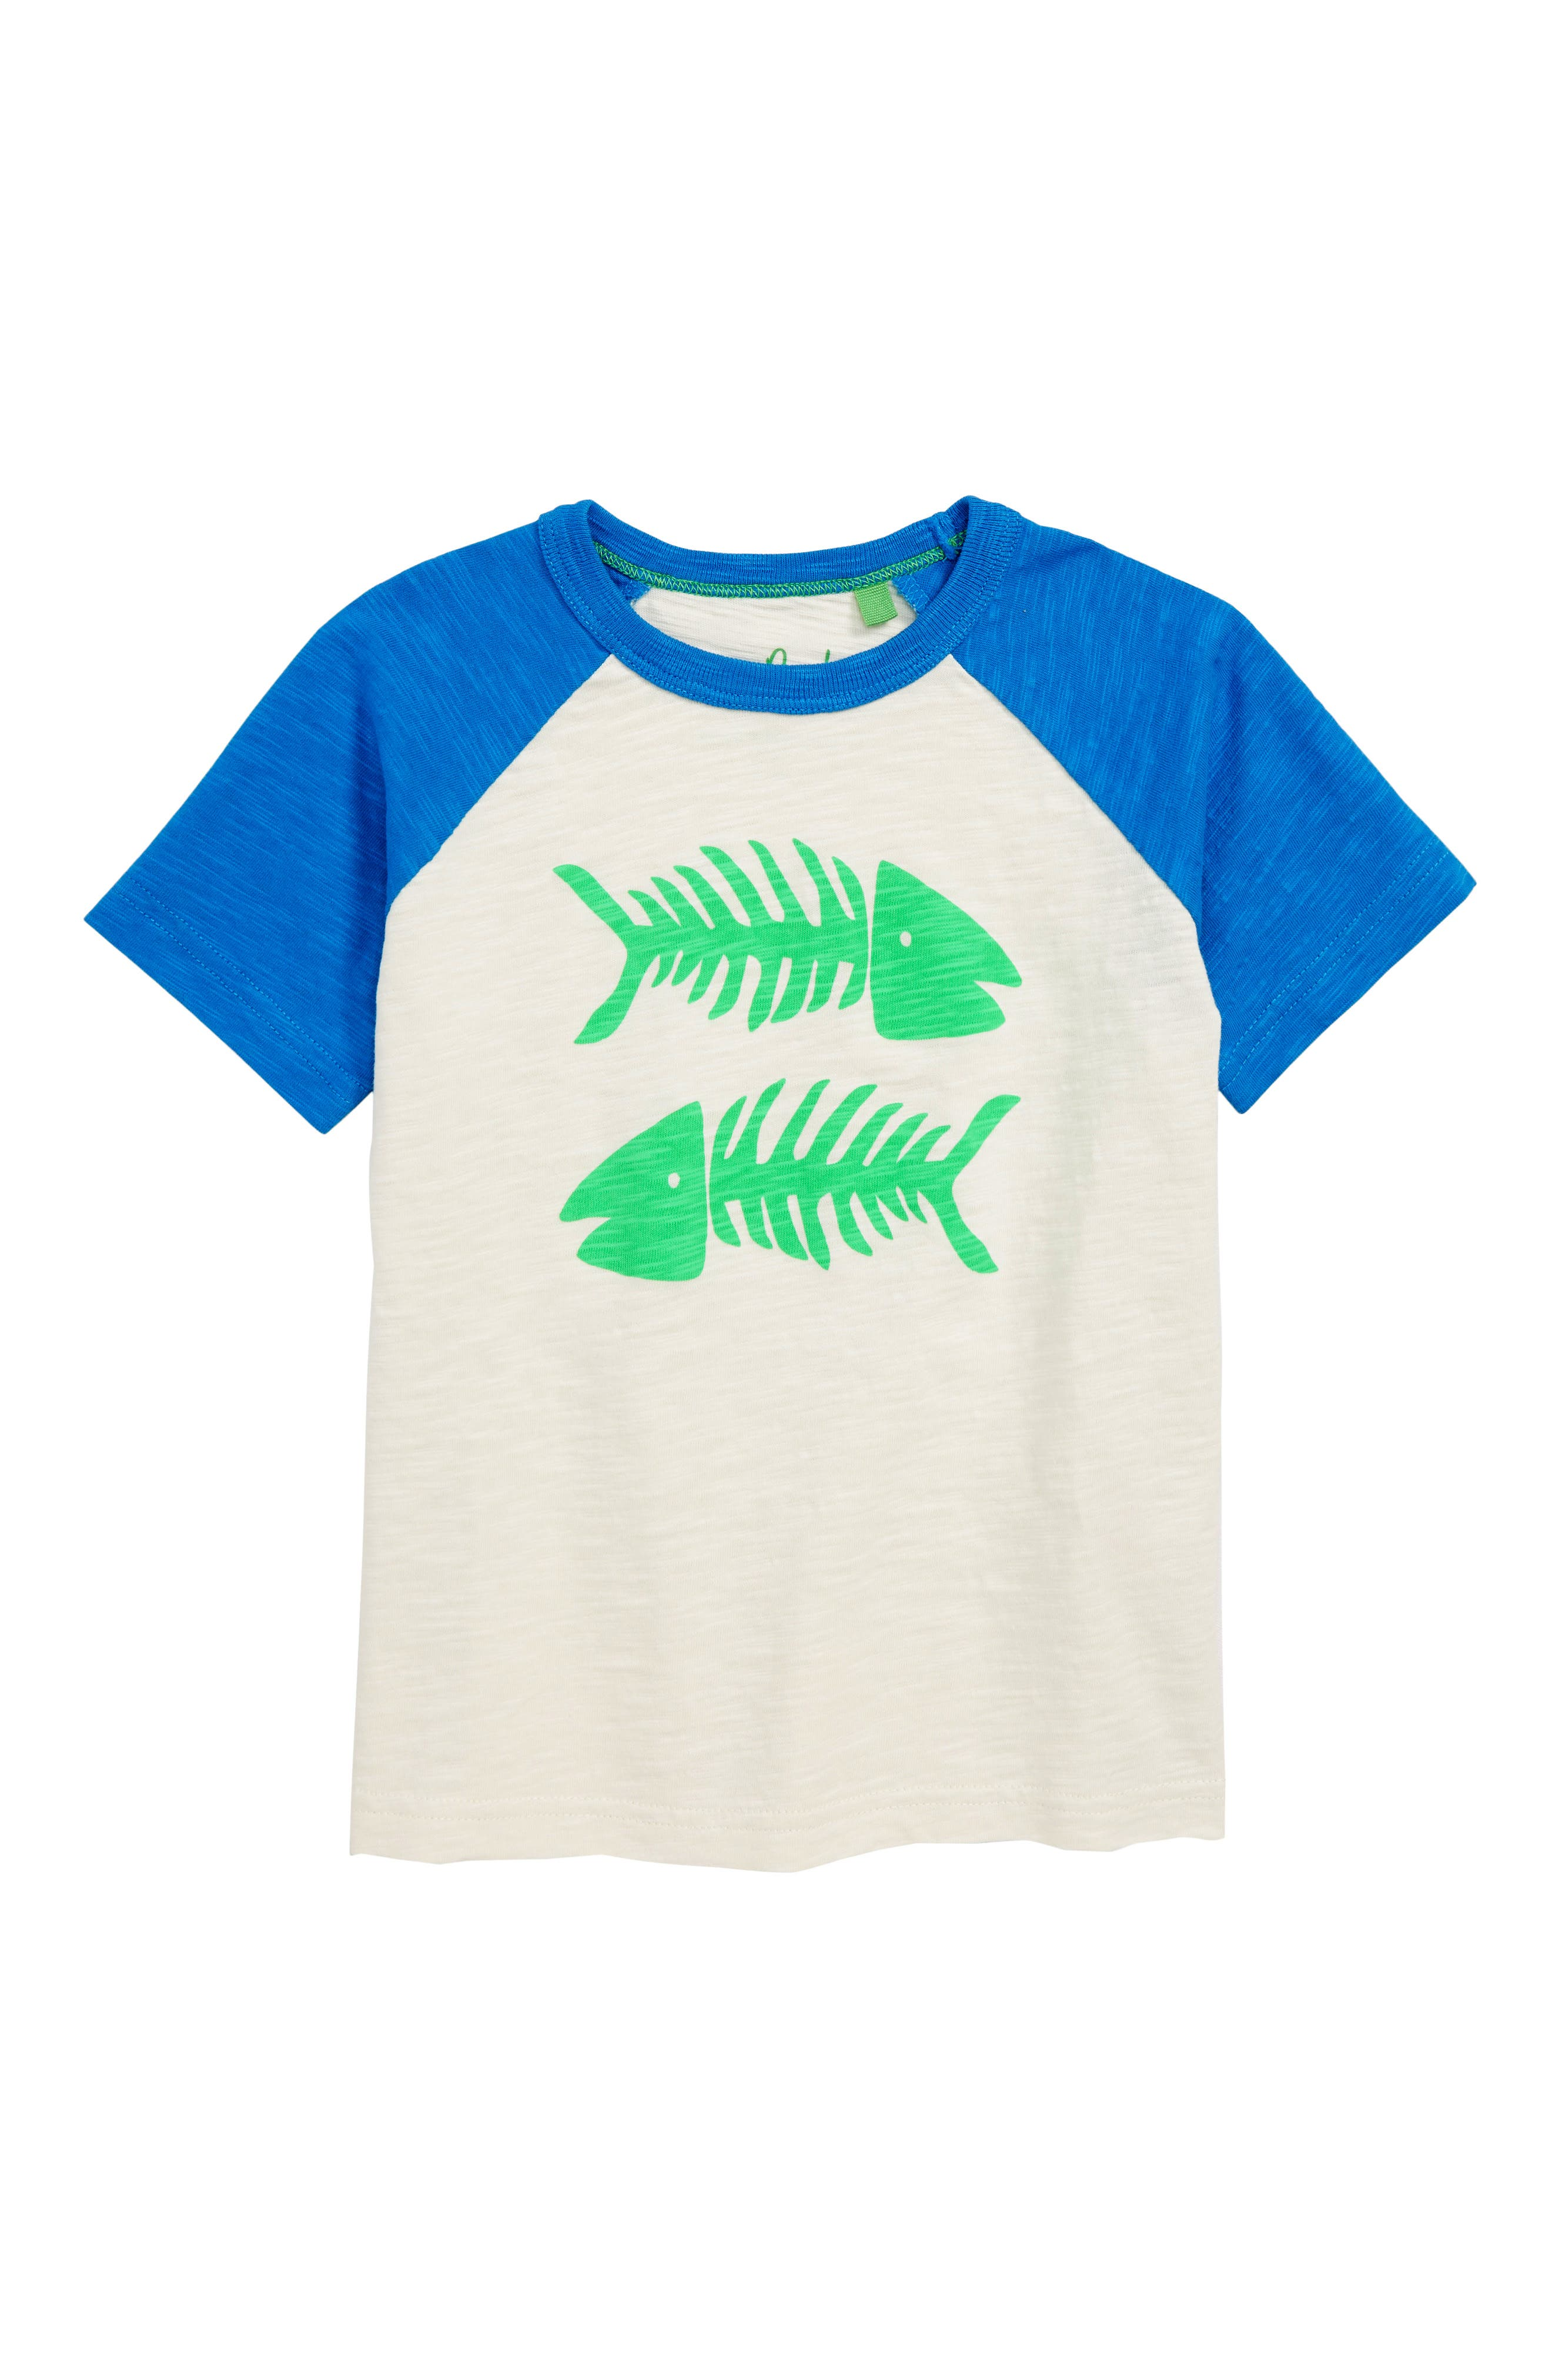 Summer Raglan T-Shirt,                         Main,                         color, Ecru/ Orion Blue Fish